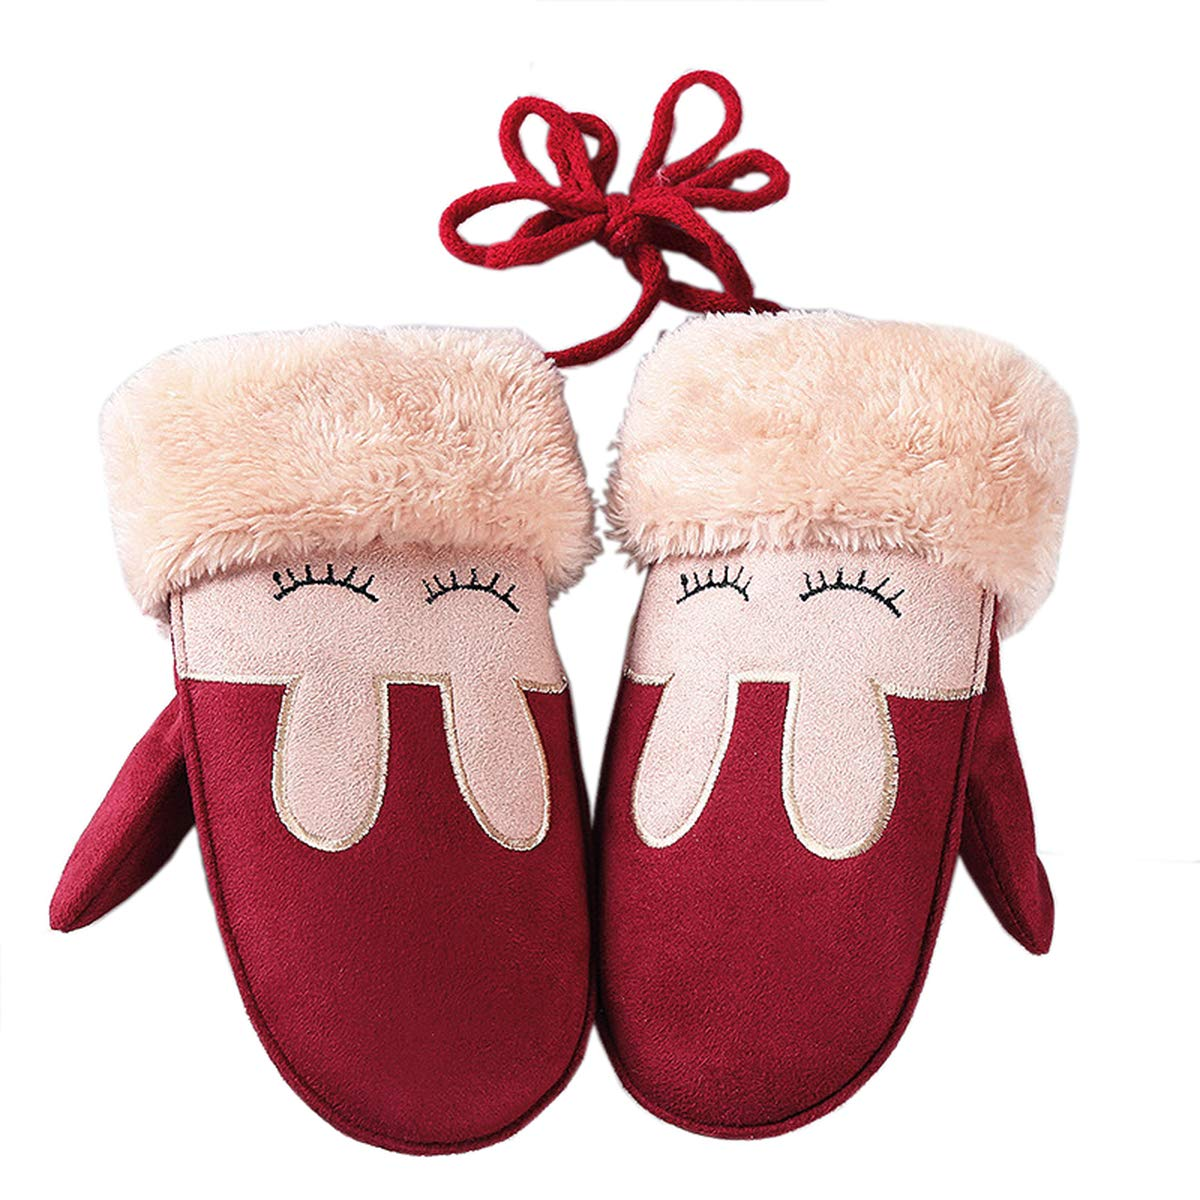 W-RHYME Girls Mittens with Strings Warm Thick Faux Suede Gloves (Color 1)